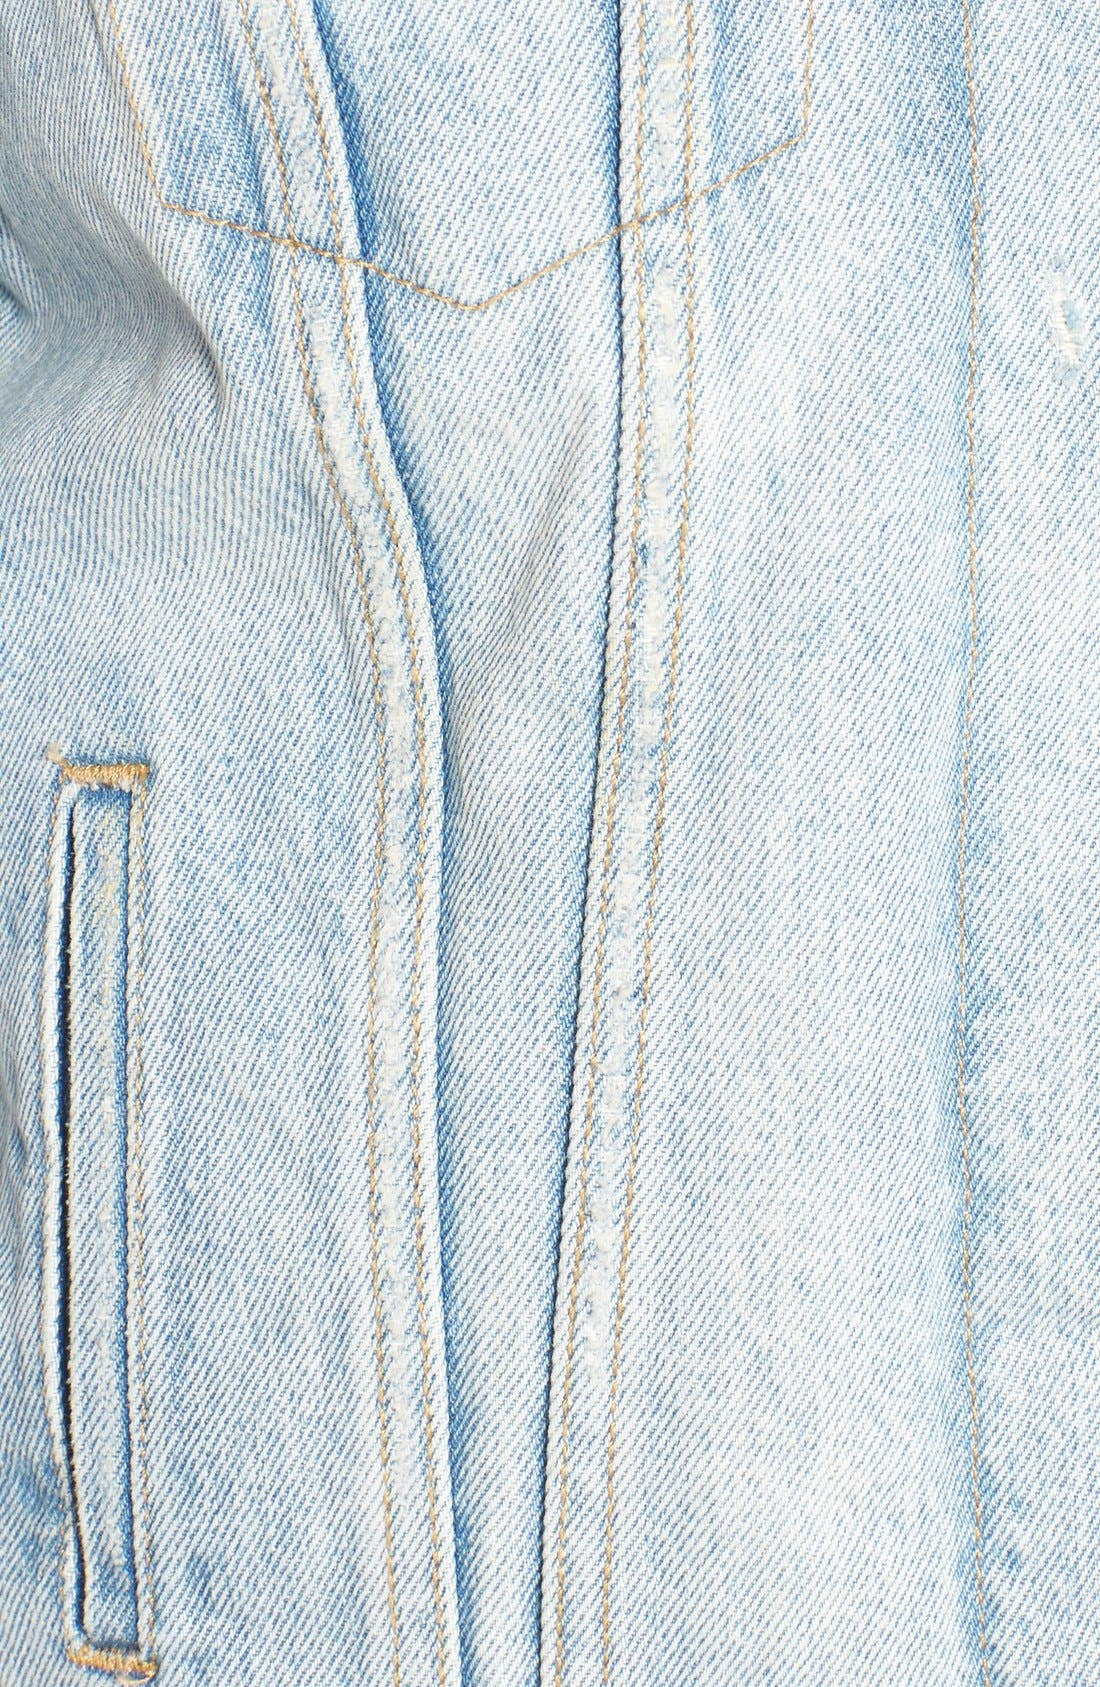 Alternate Image 5  - Levi's® Trucker Jacket with Faux Fur Trim (East Alley)